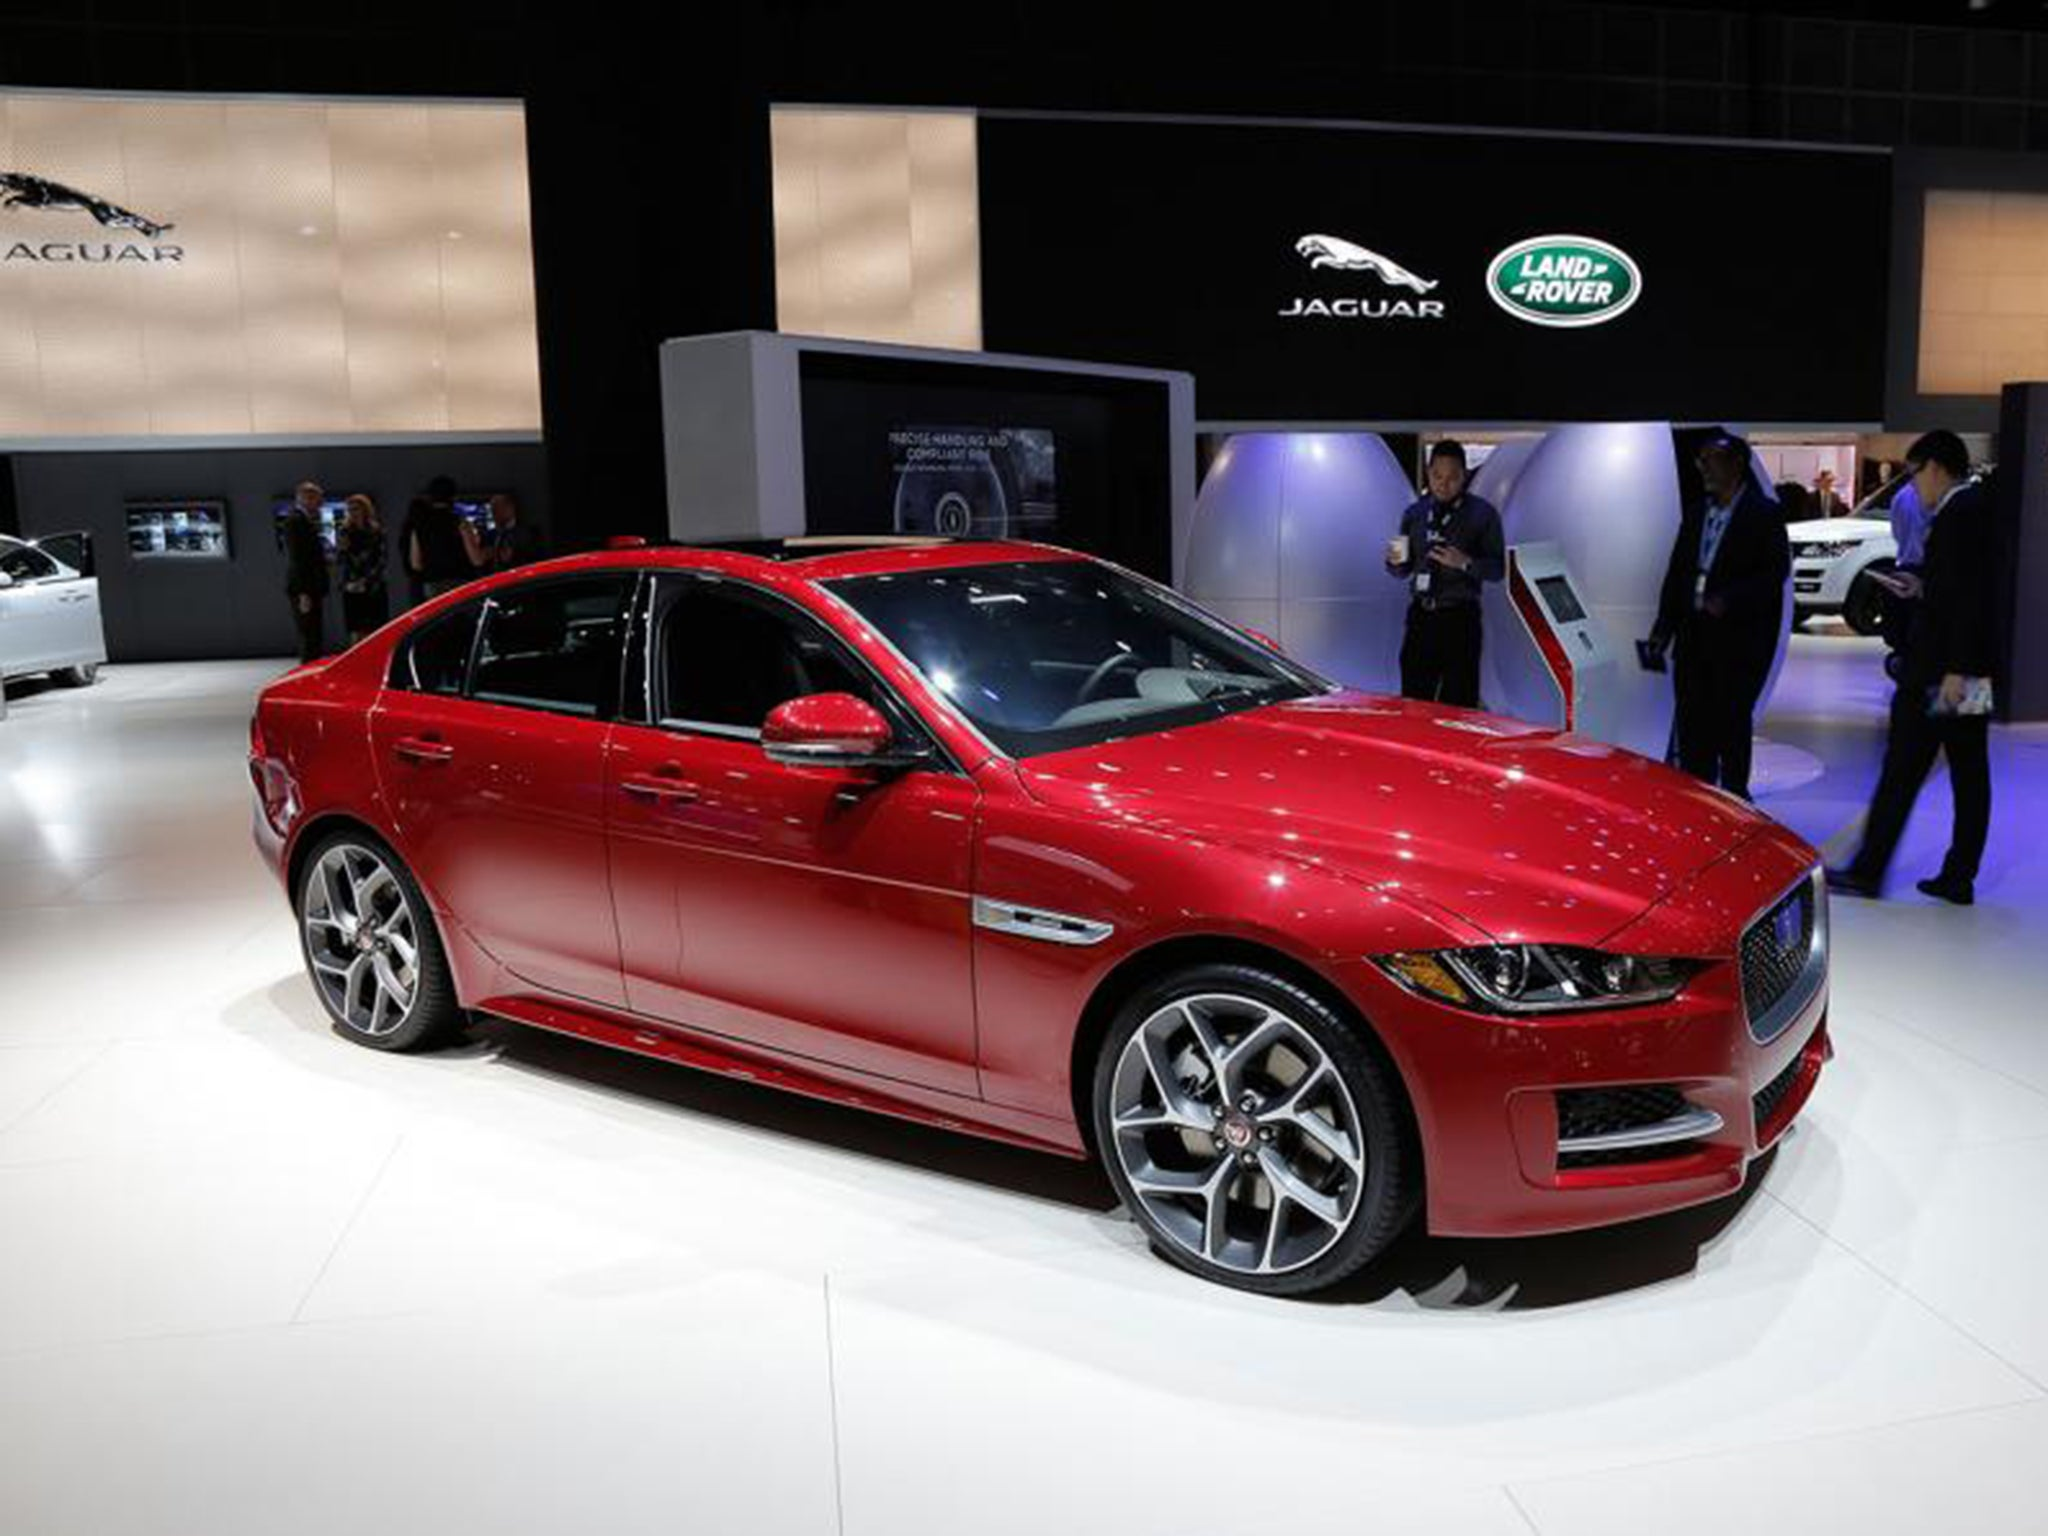 Jaguar land rover is the best place to work in the uk